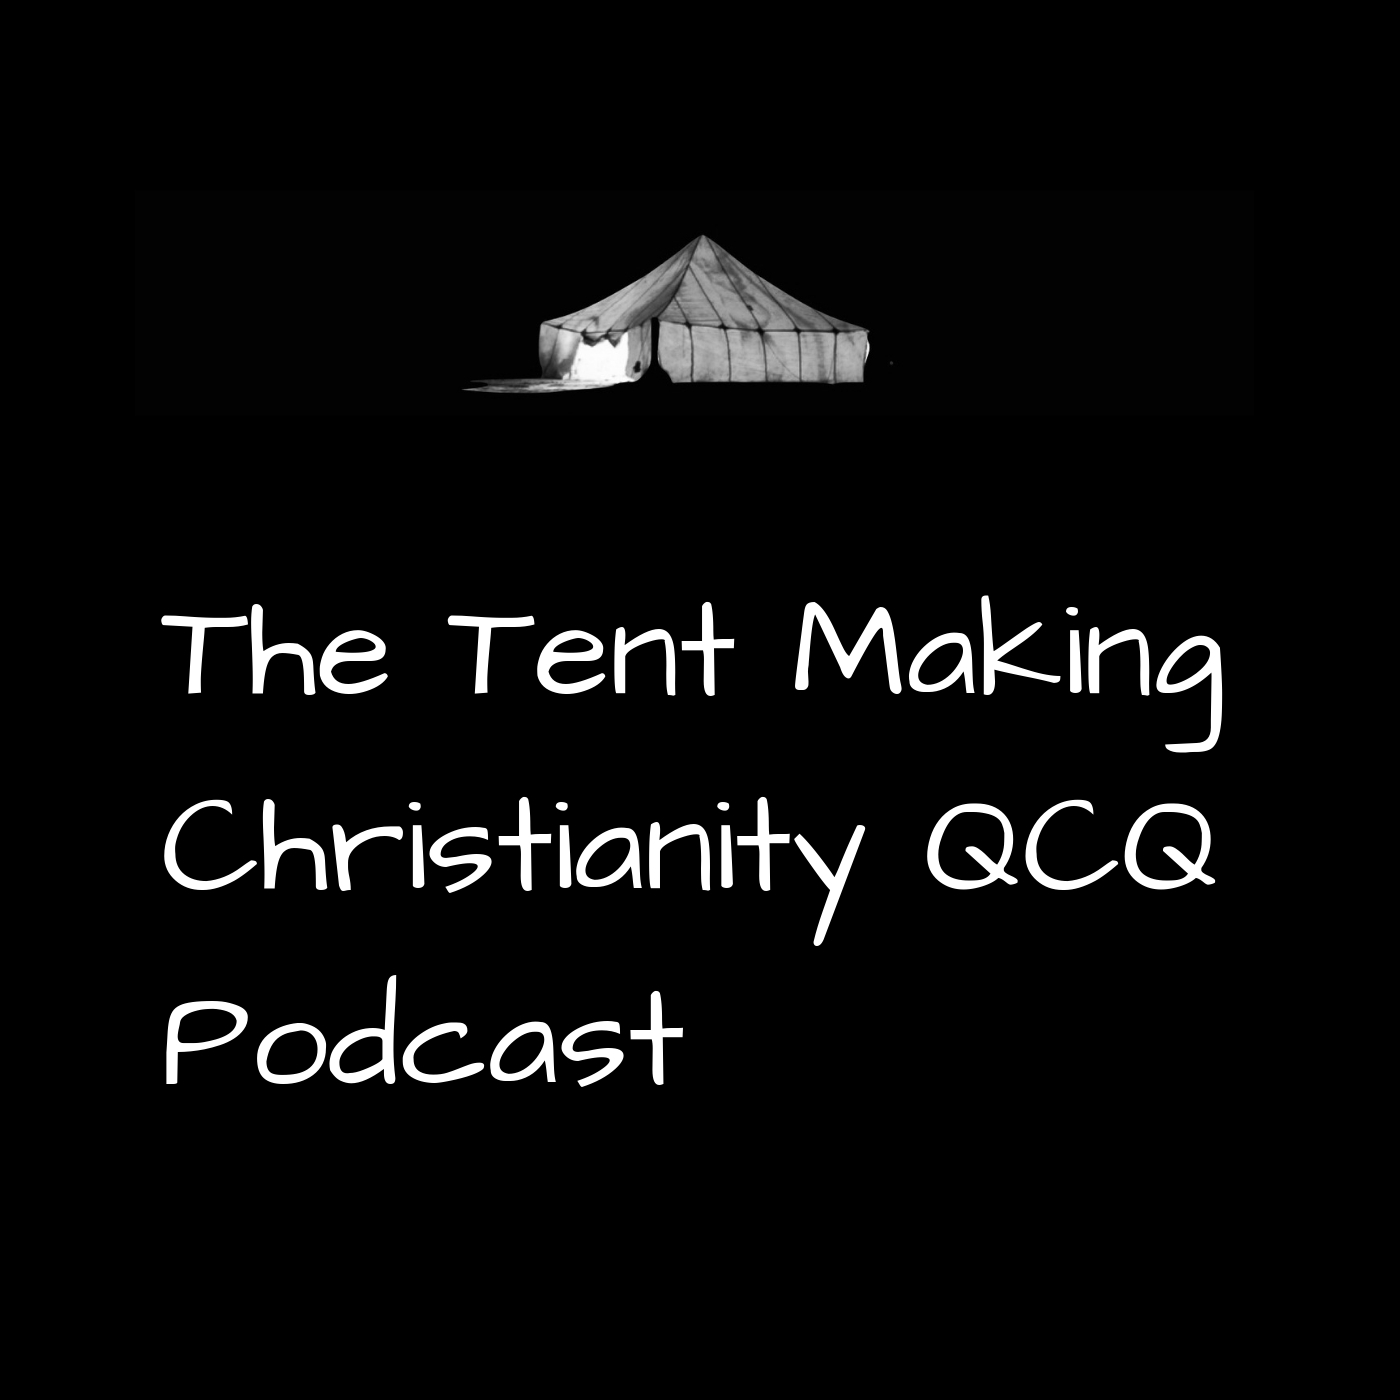 In this episode of The Tent Making Christianity QCQ Podcast, Drew and David discuss the challenge that James Chapter 2 teaches salvation by works.